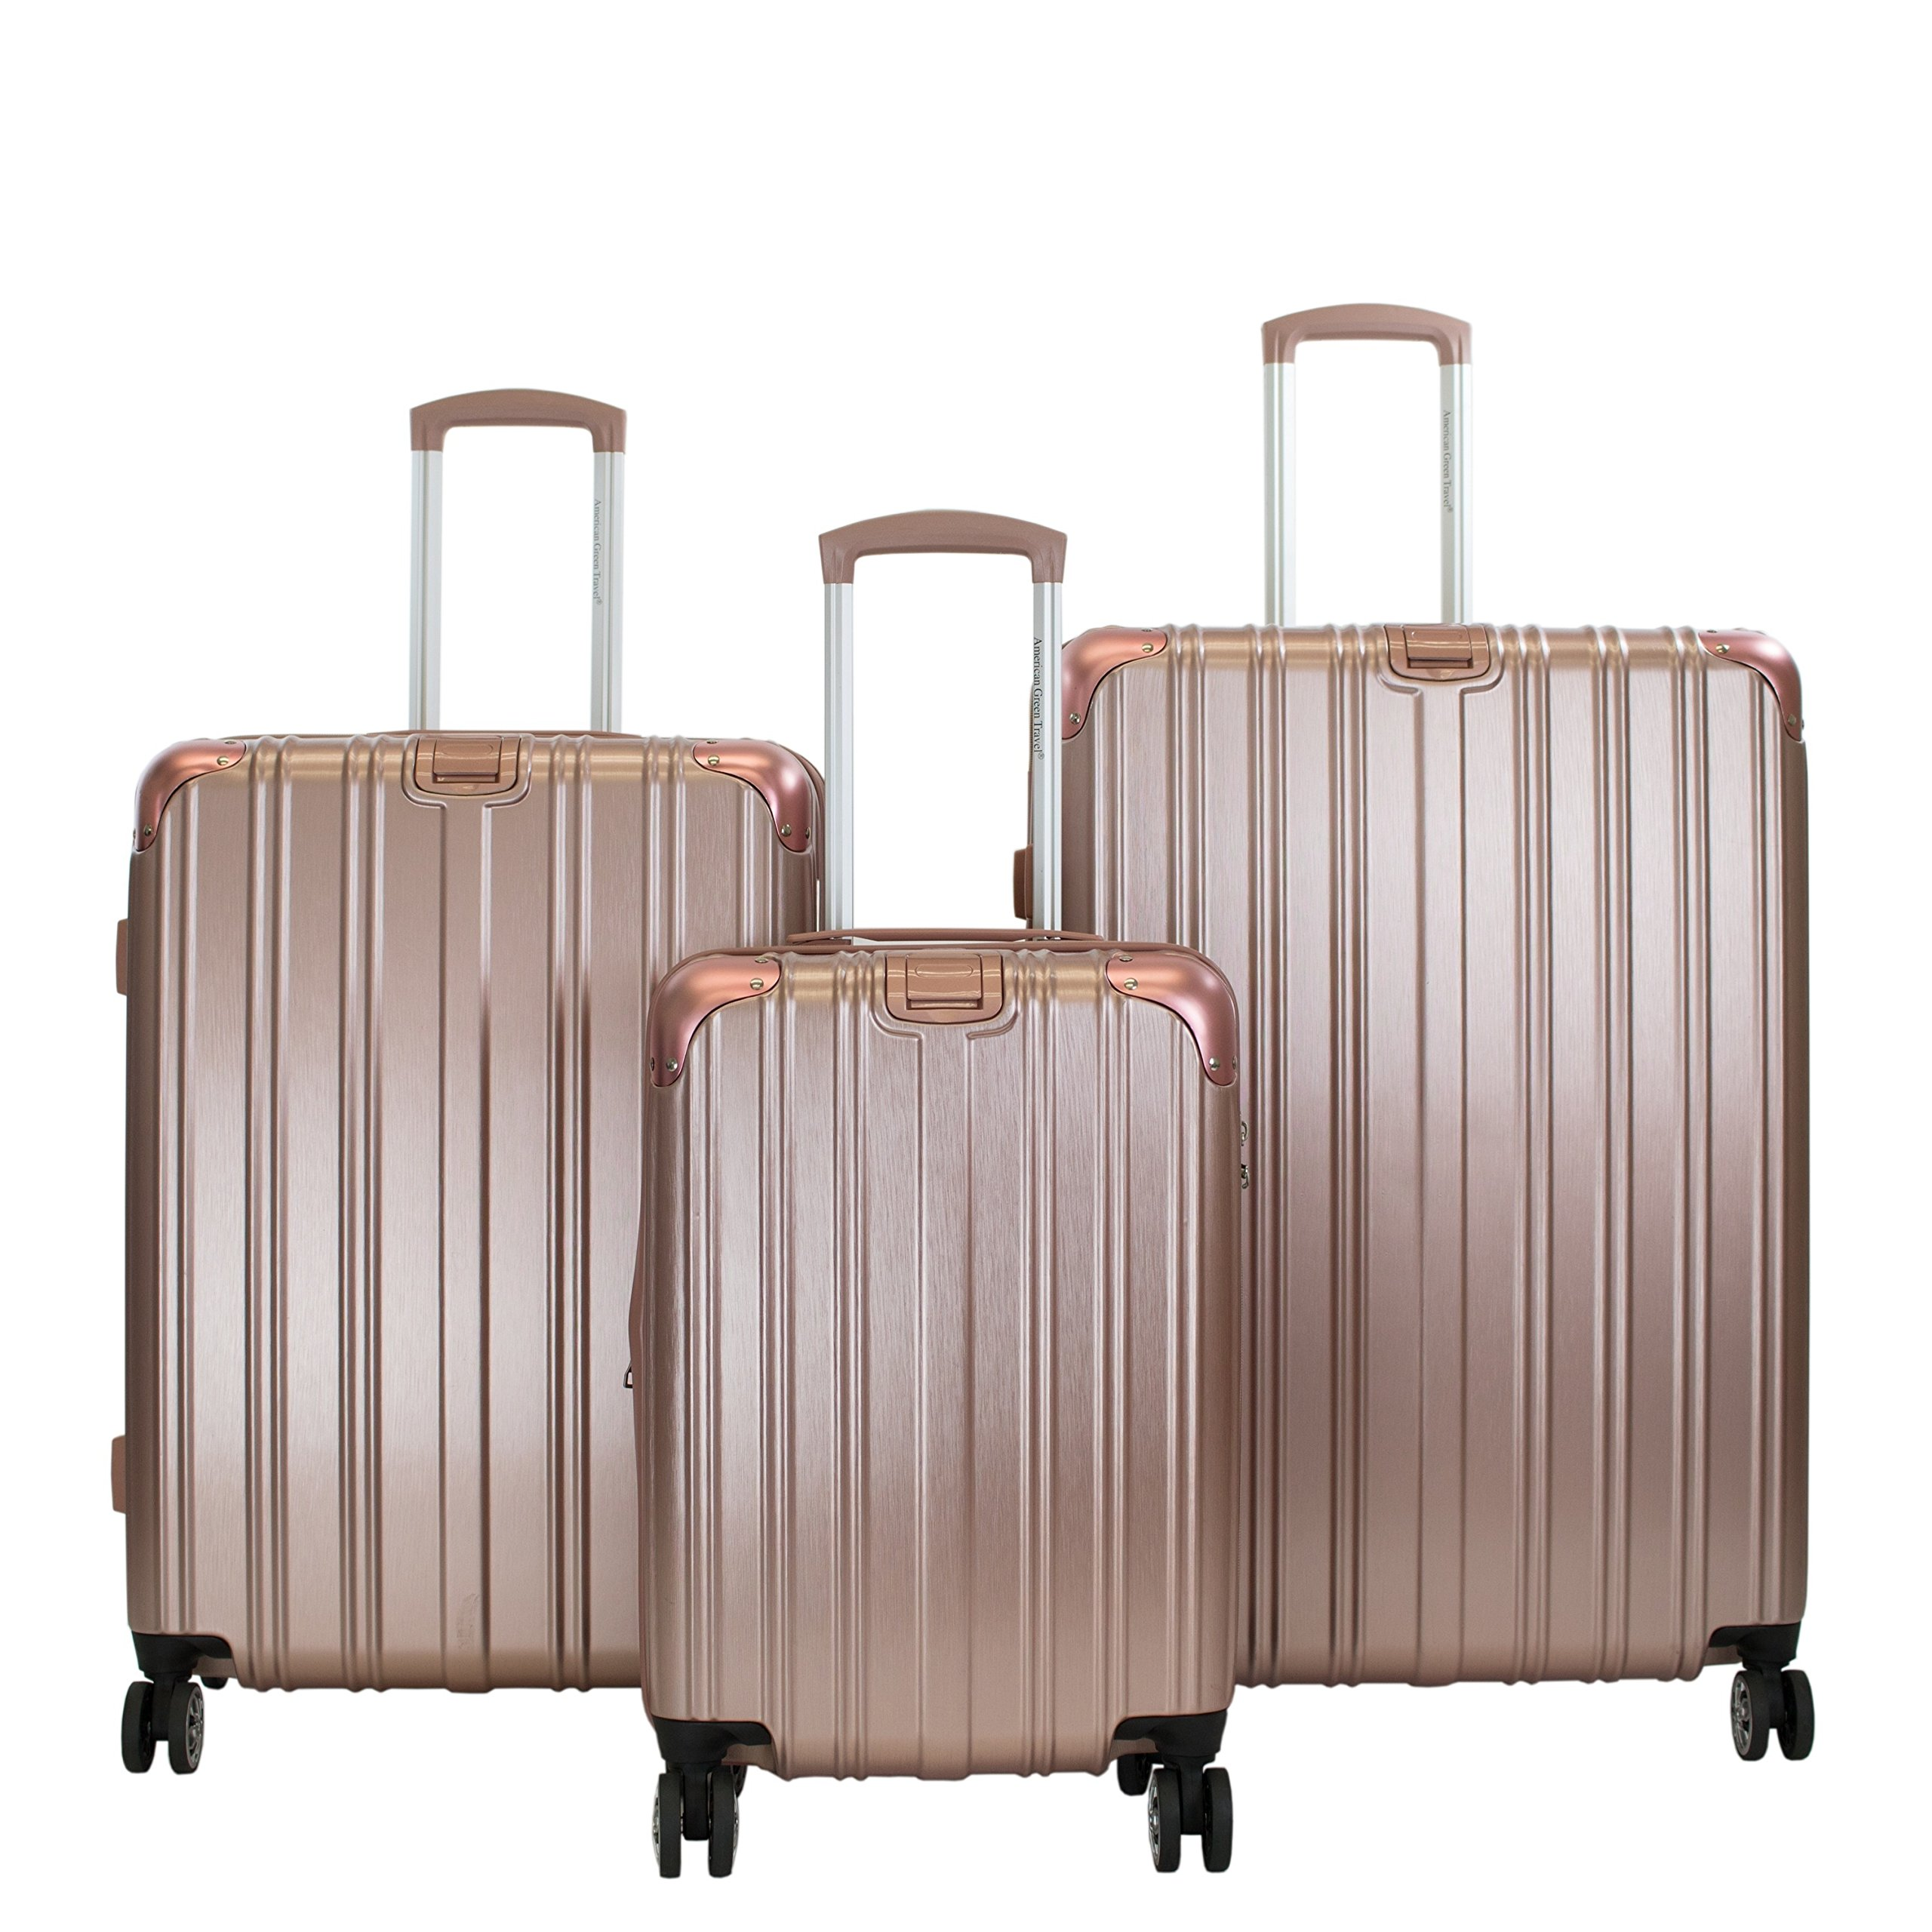 American Green Travel Melrose II 3-piece Hardside Spinner Luggage Set Grey by American Green Travel